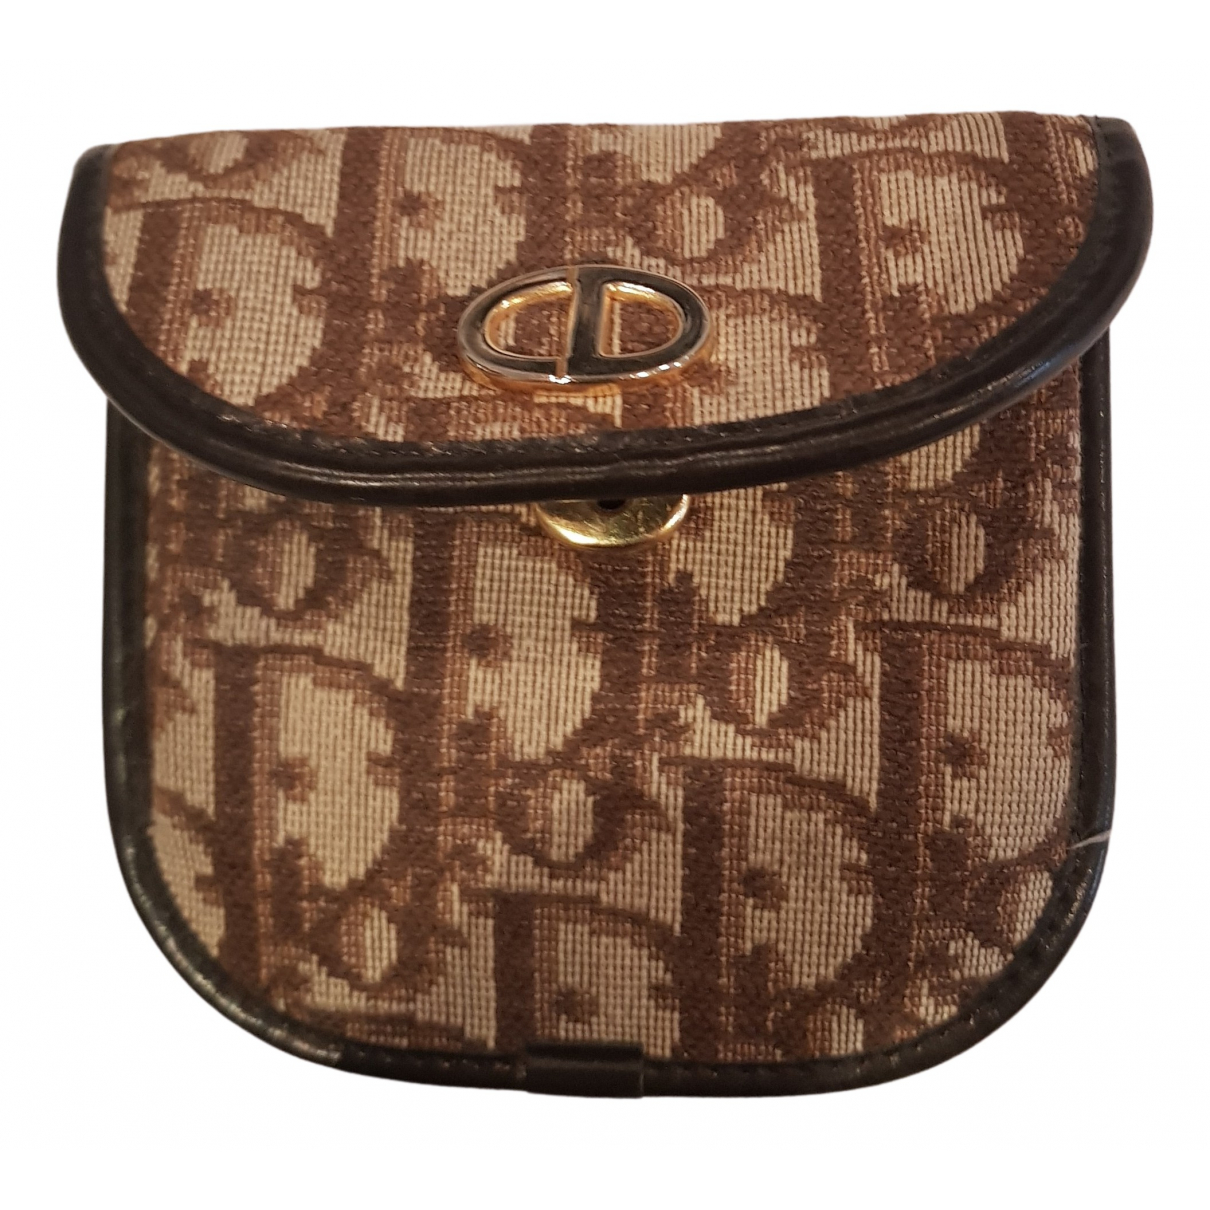 Dior N Brown Cotton Purses, wallet & cases for Women N